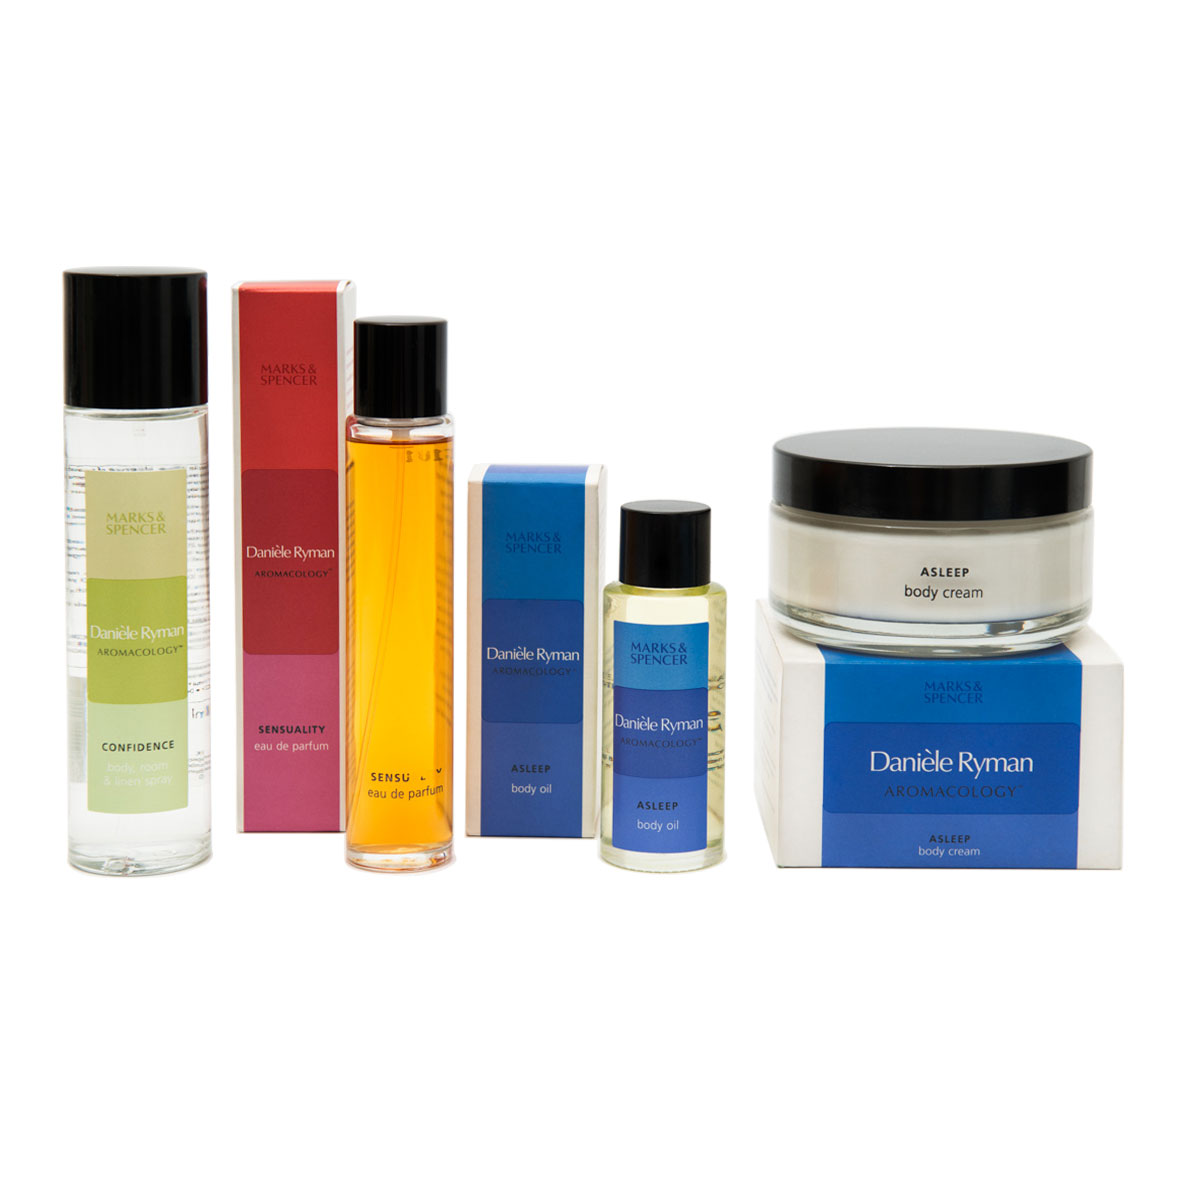 Daniele Ryman Marks Spencer Products